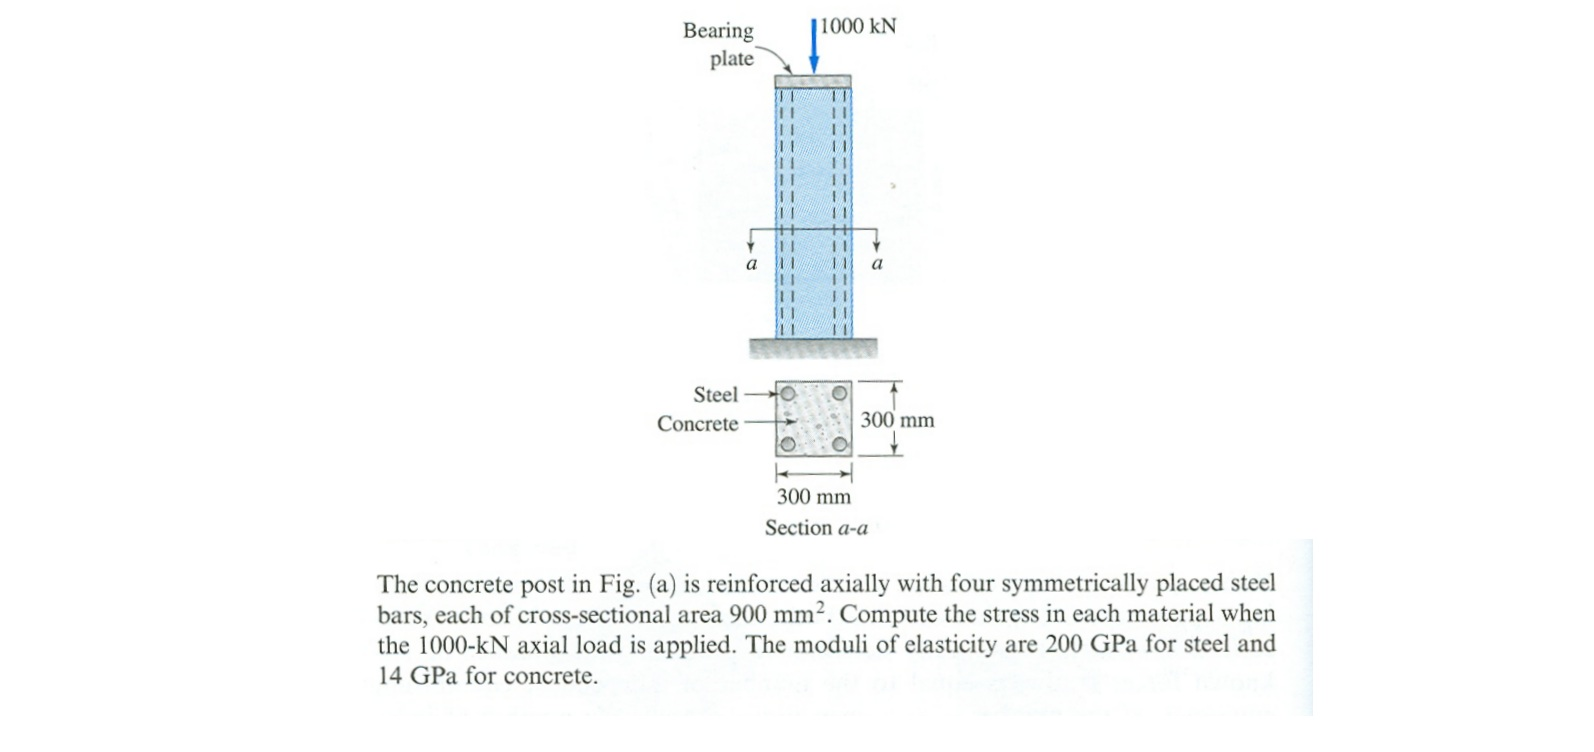 The concrete post in Fig. (a) is reinforced axiall